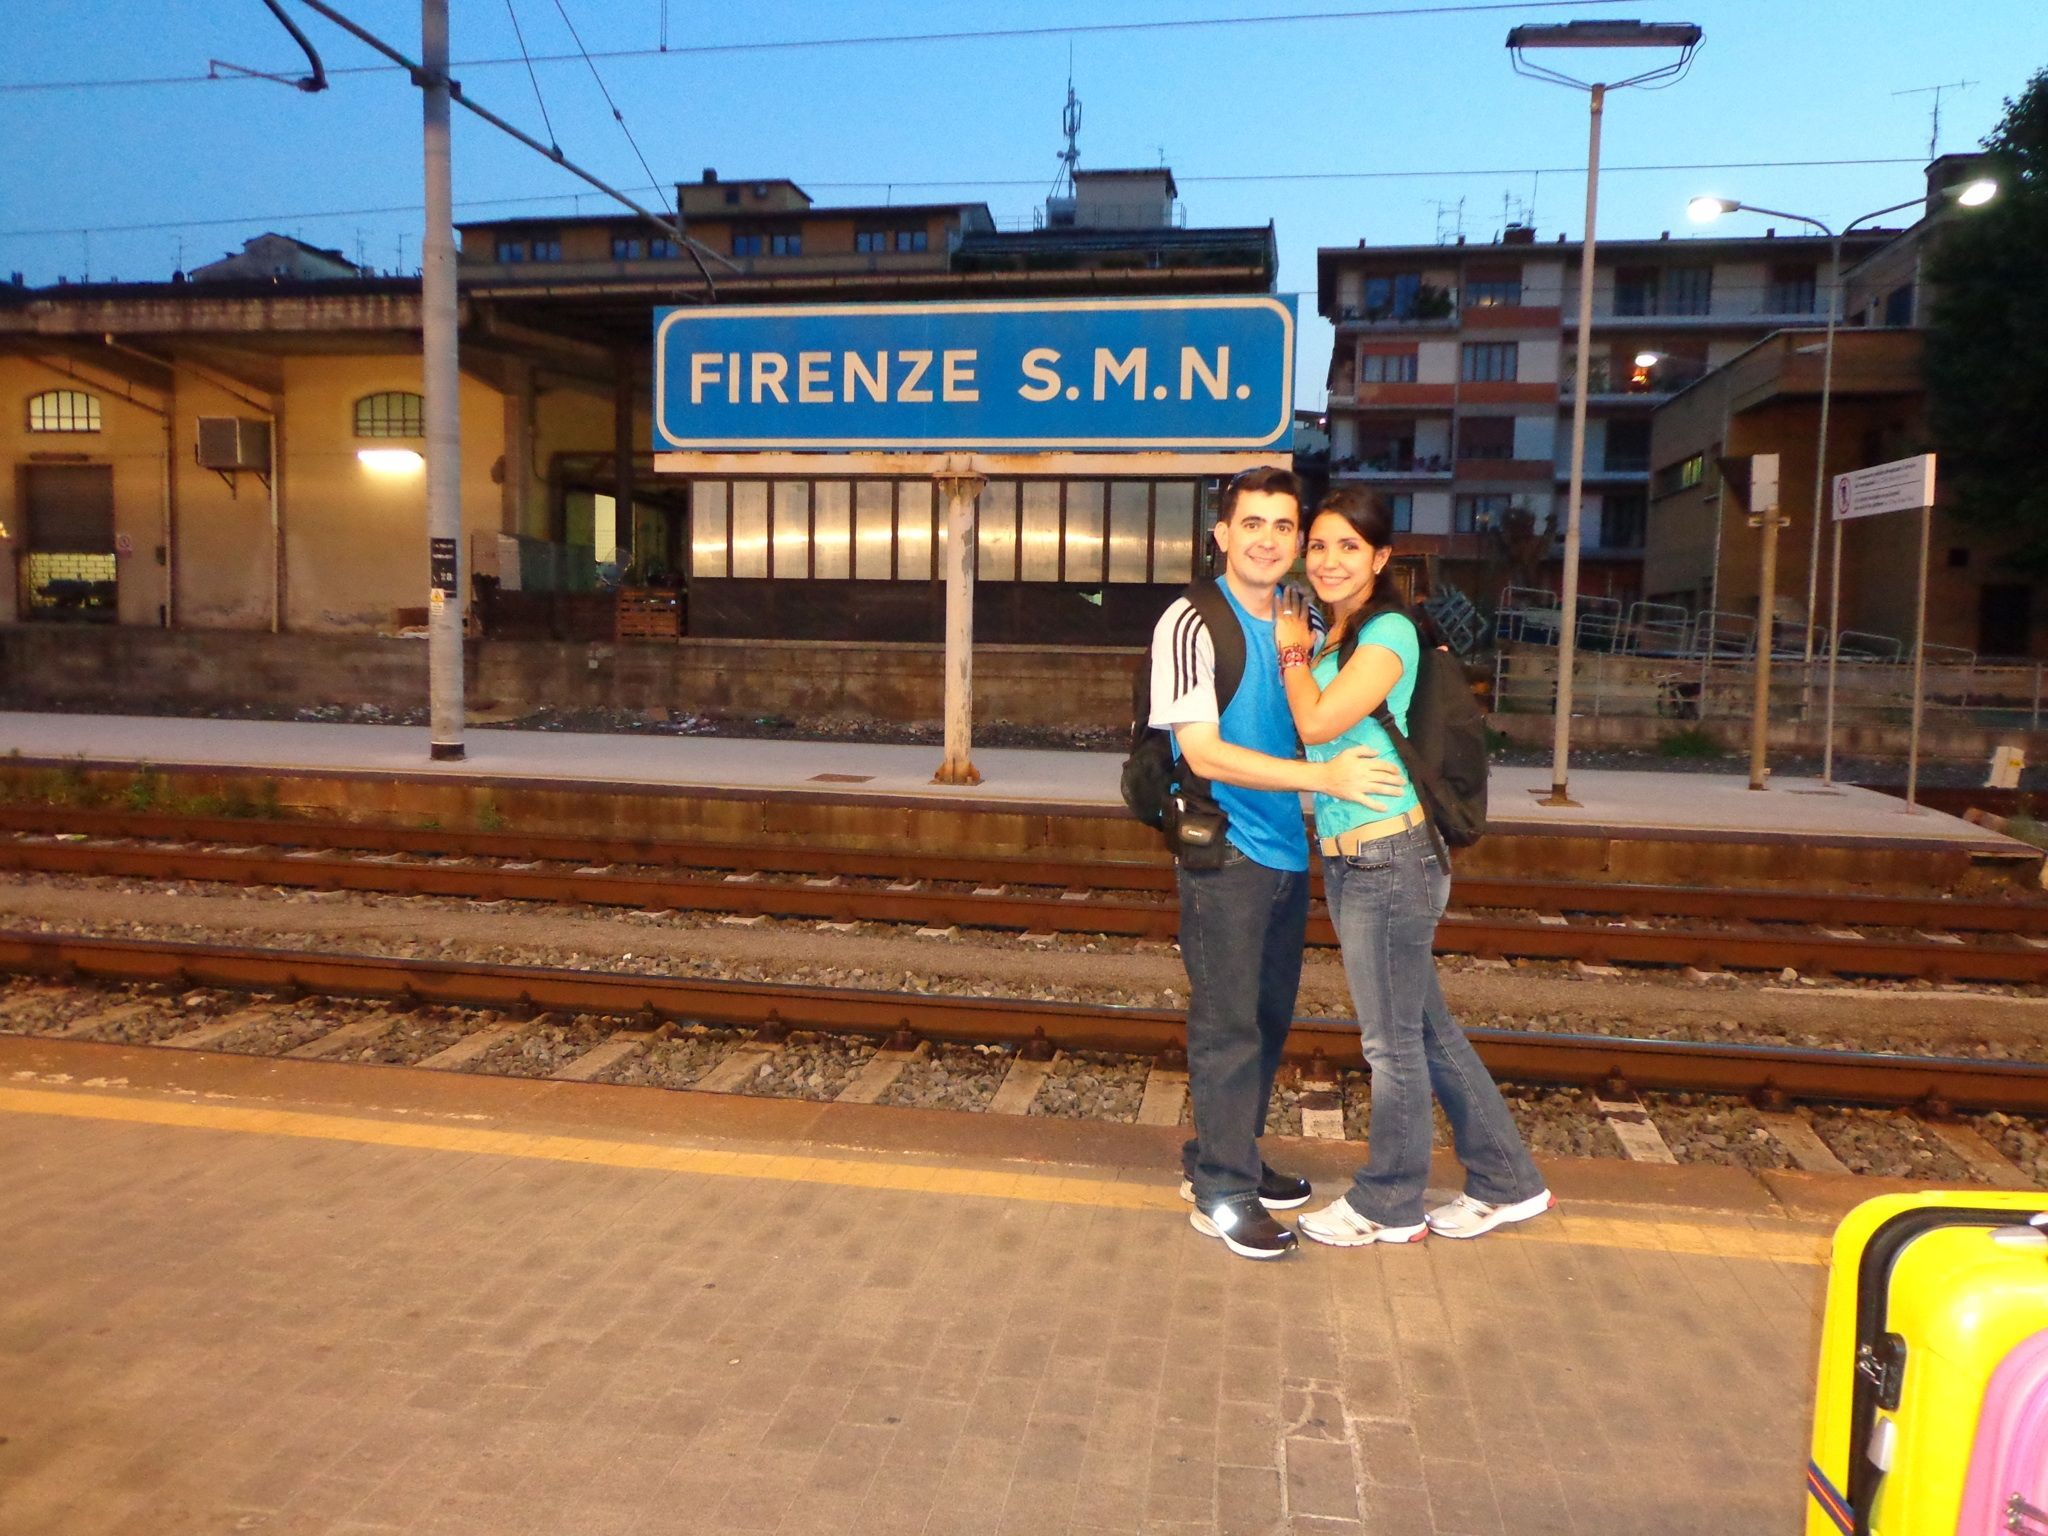 Firenze: train station